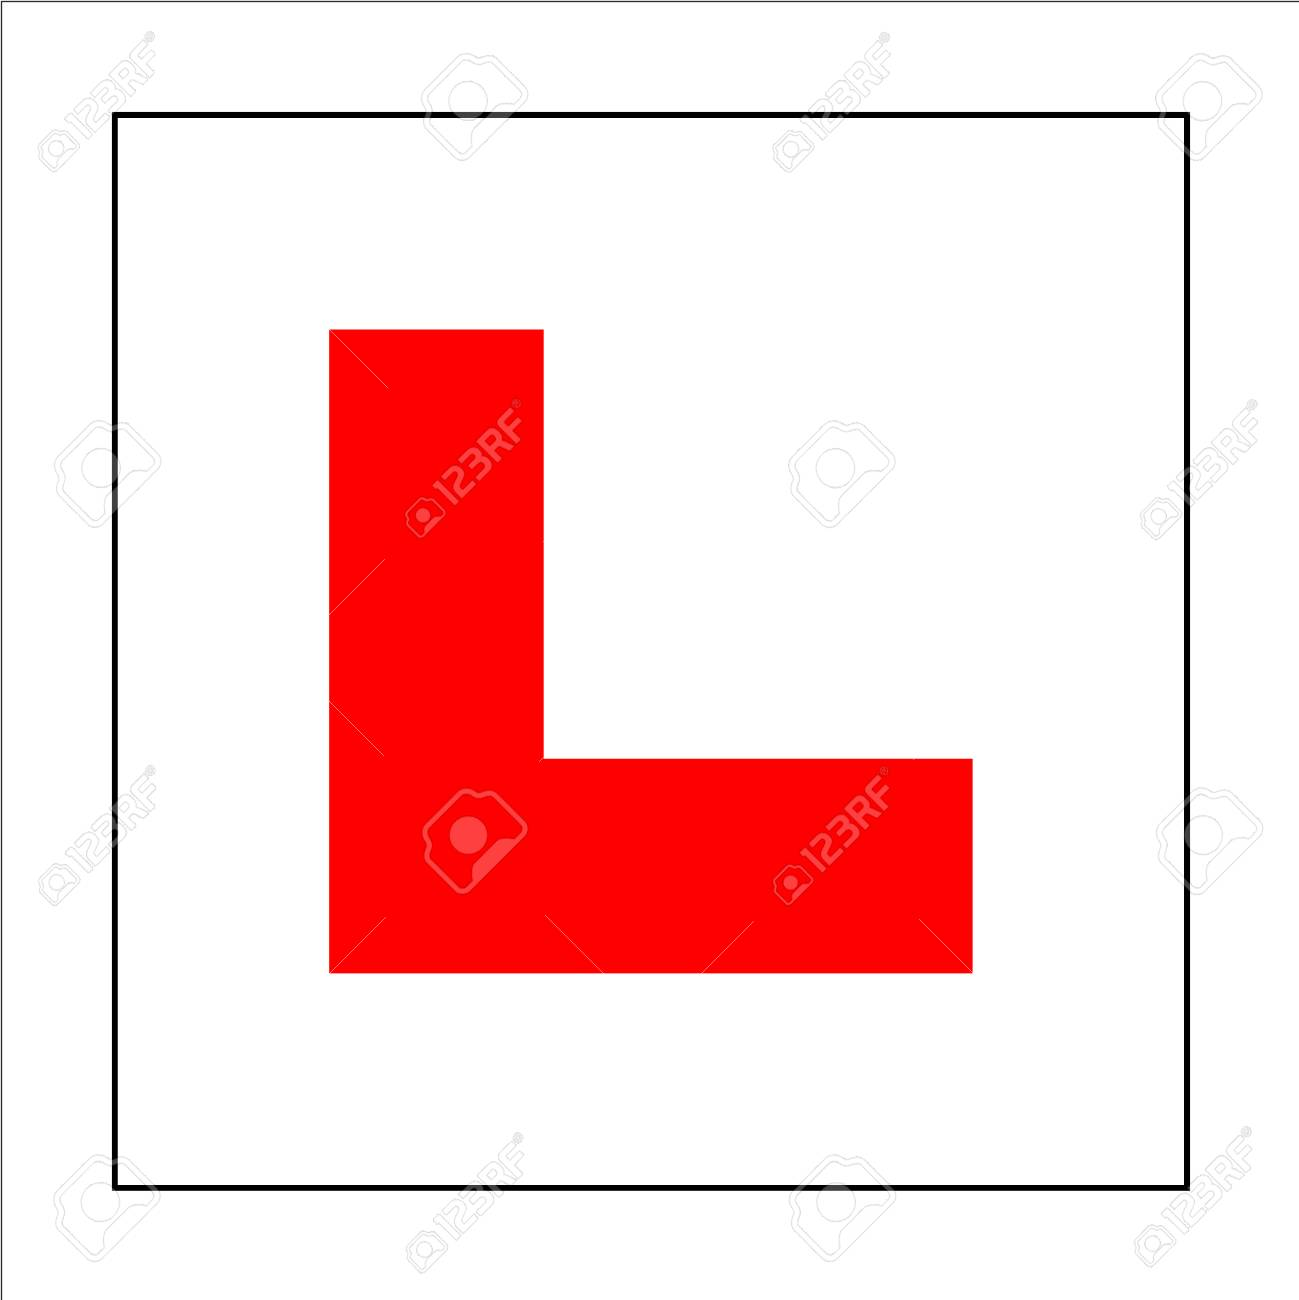 Learner driver plate sign. Car driving school beginner symbol. Red letter L  on square